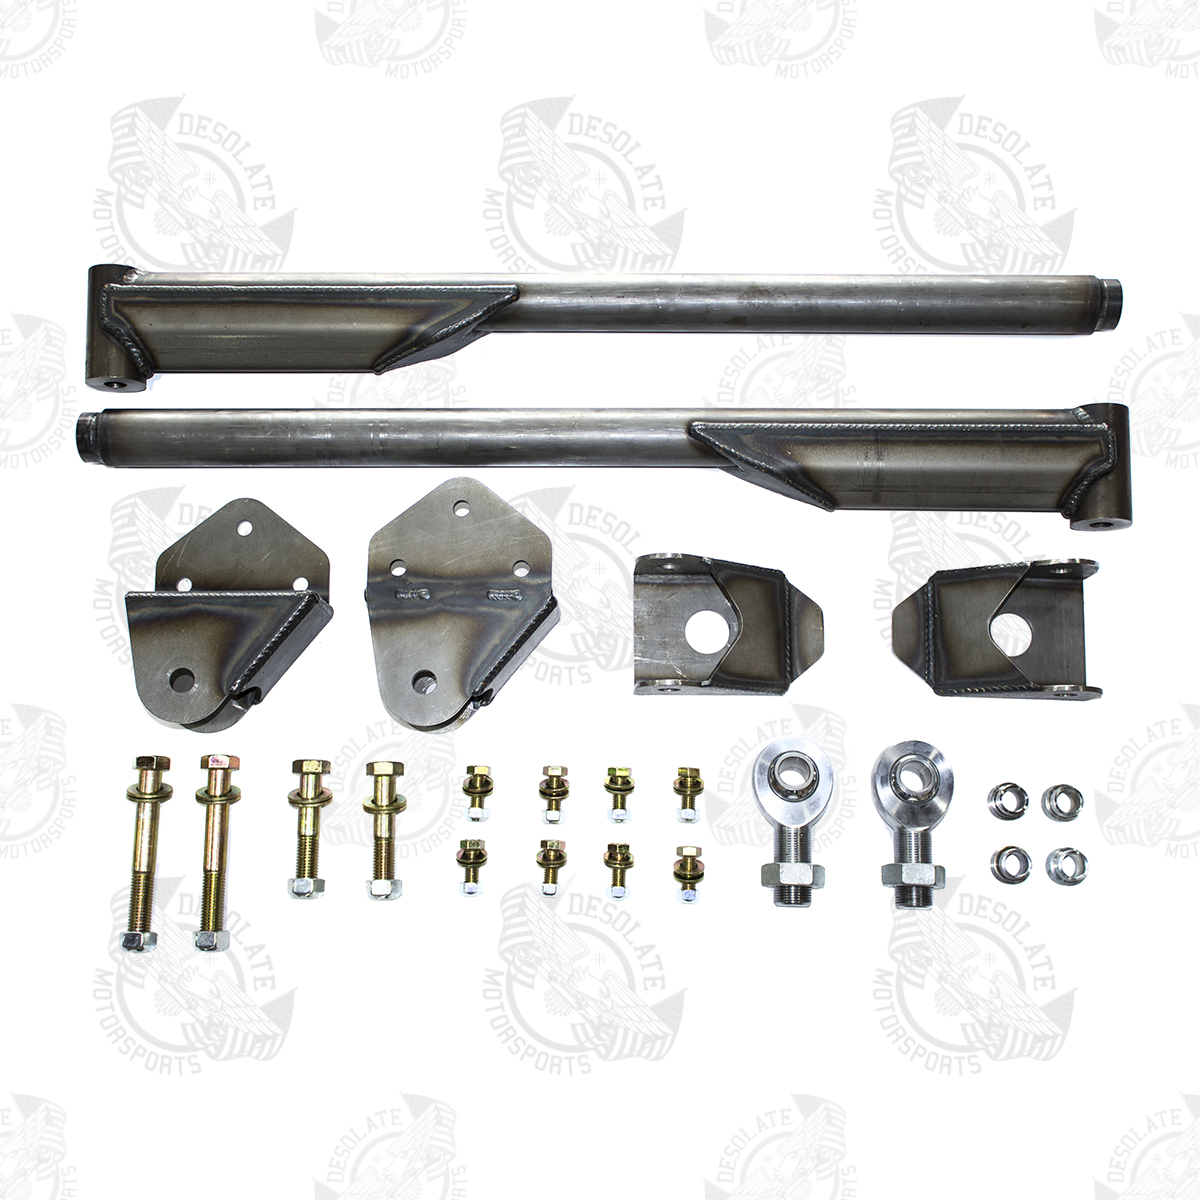 Desolate Motorsports Bronco 80 96 Radius Arms High Clearance